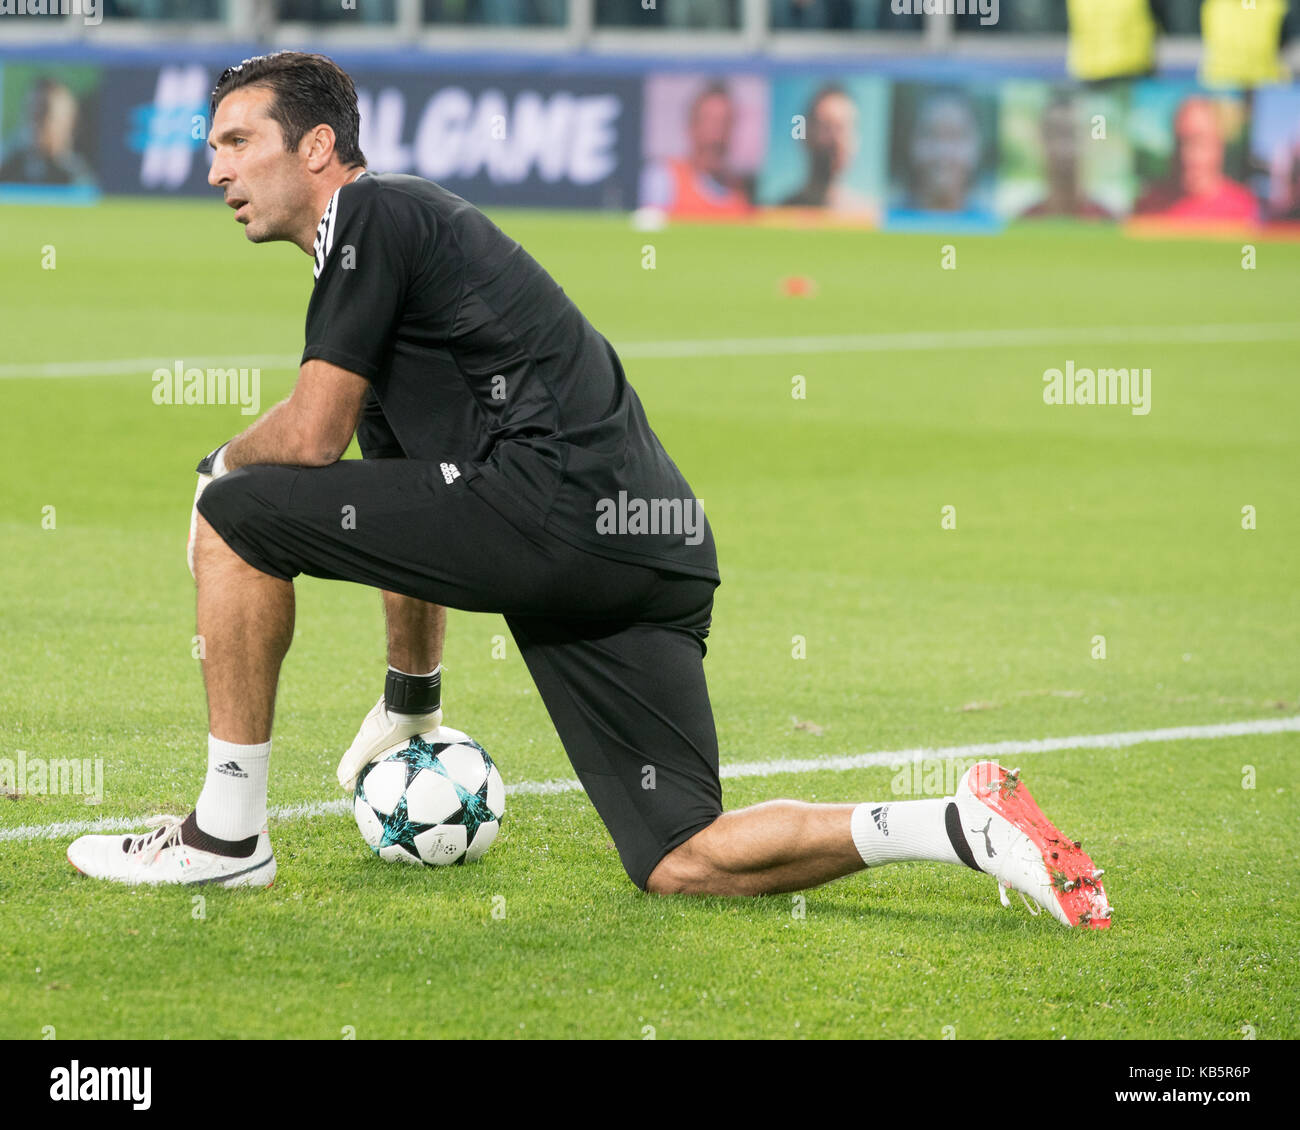 68b7d6ba4 Gianluigi Buffon during the Champions League match Juventus fc vs  Olympiacos Fc - Stock Image